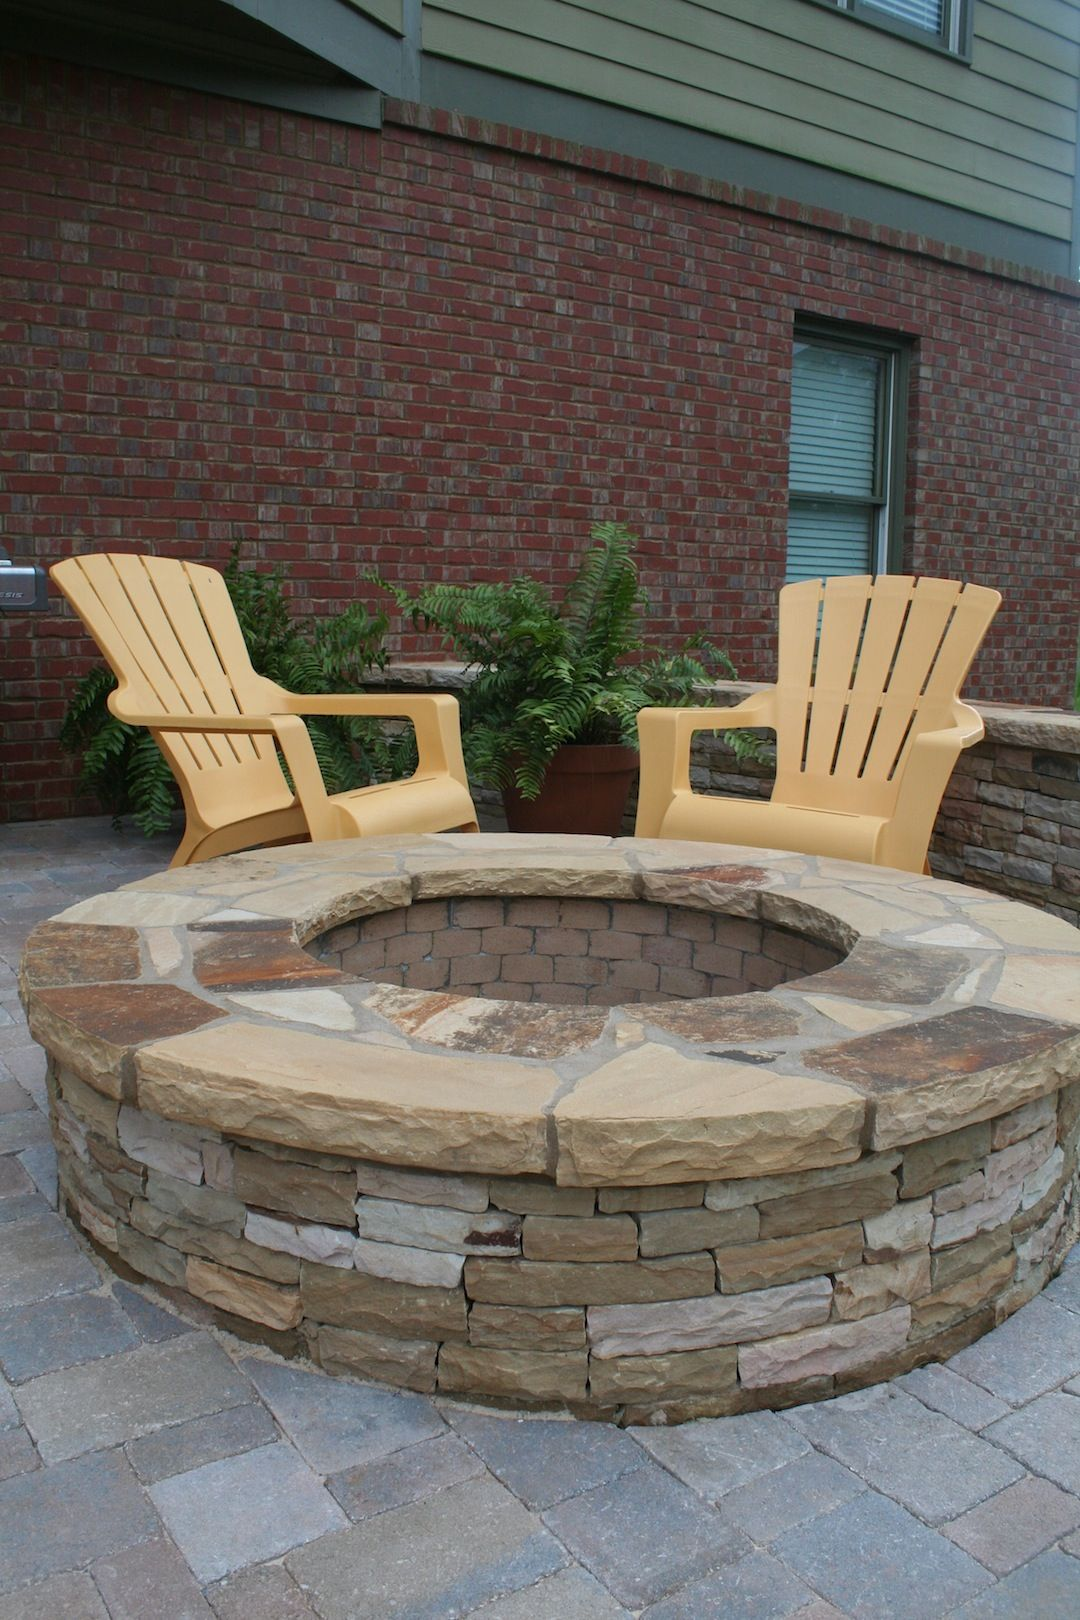 Outdoor Covered Patio With Fireplace Great Addition Idea Dream Dream Dream: Backyard Patio, Stone Fire Pit, Backyard Inspiration